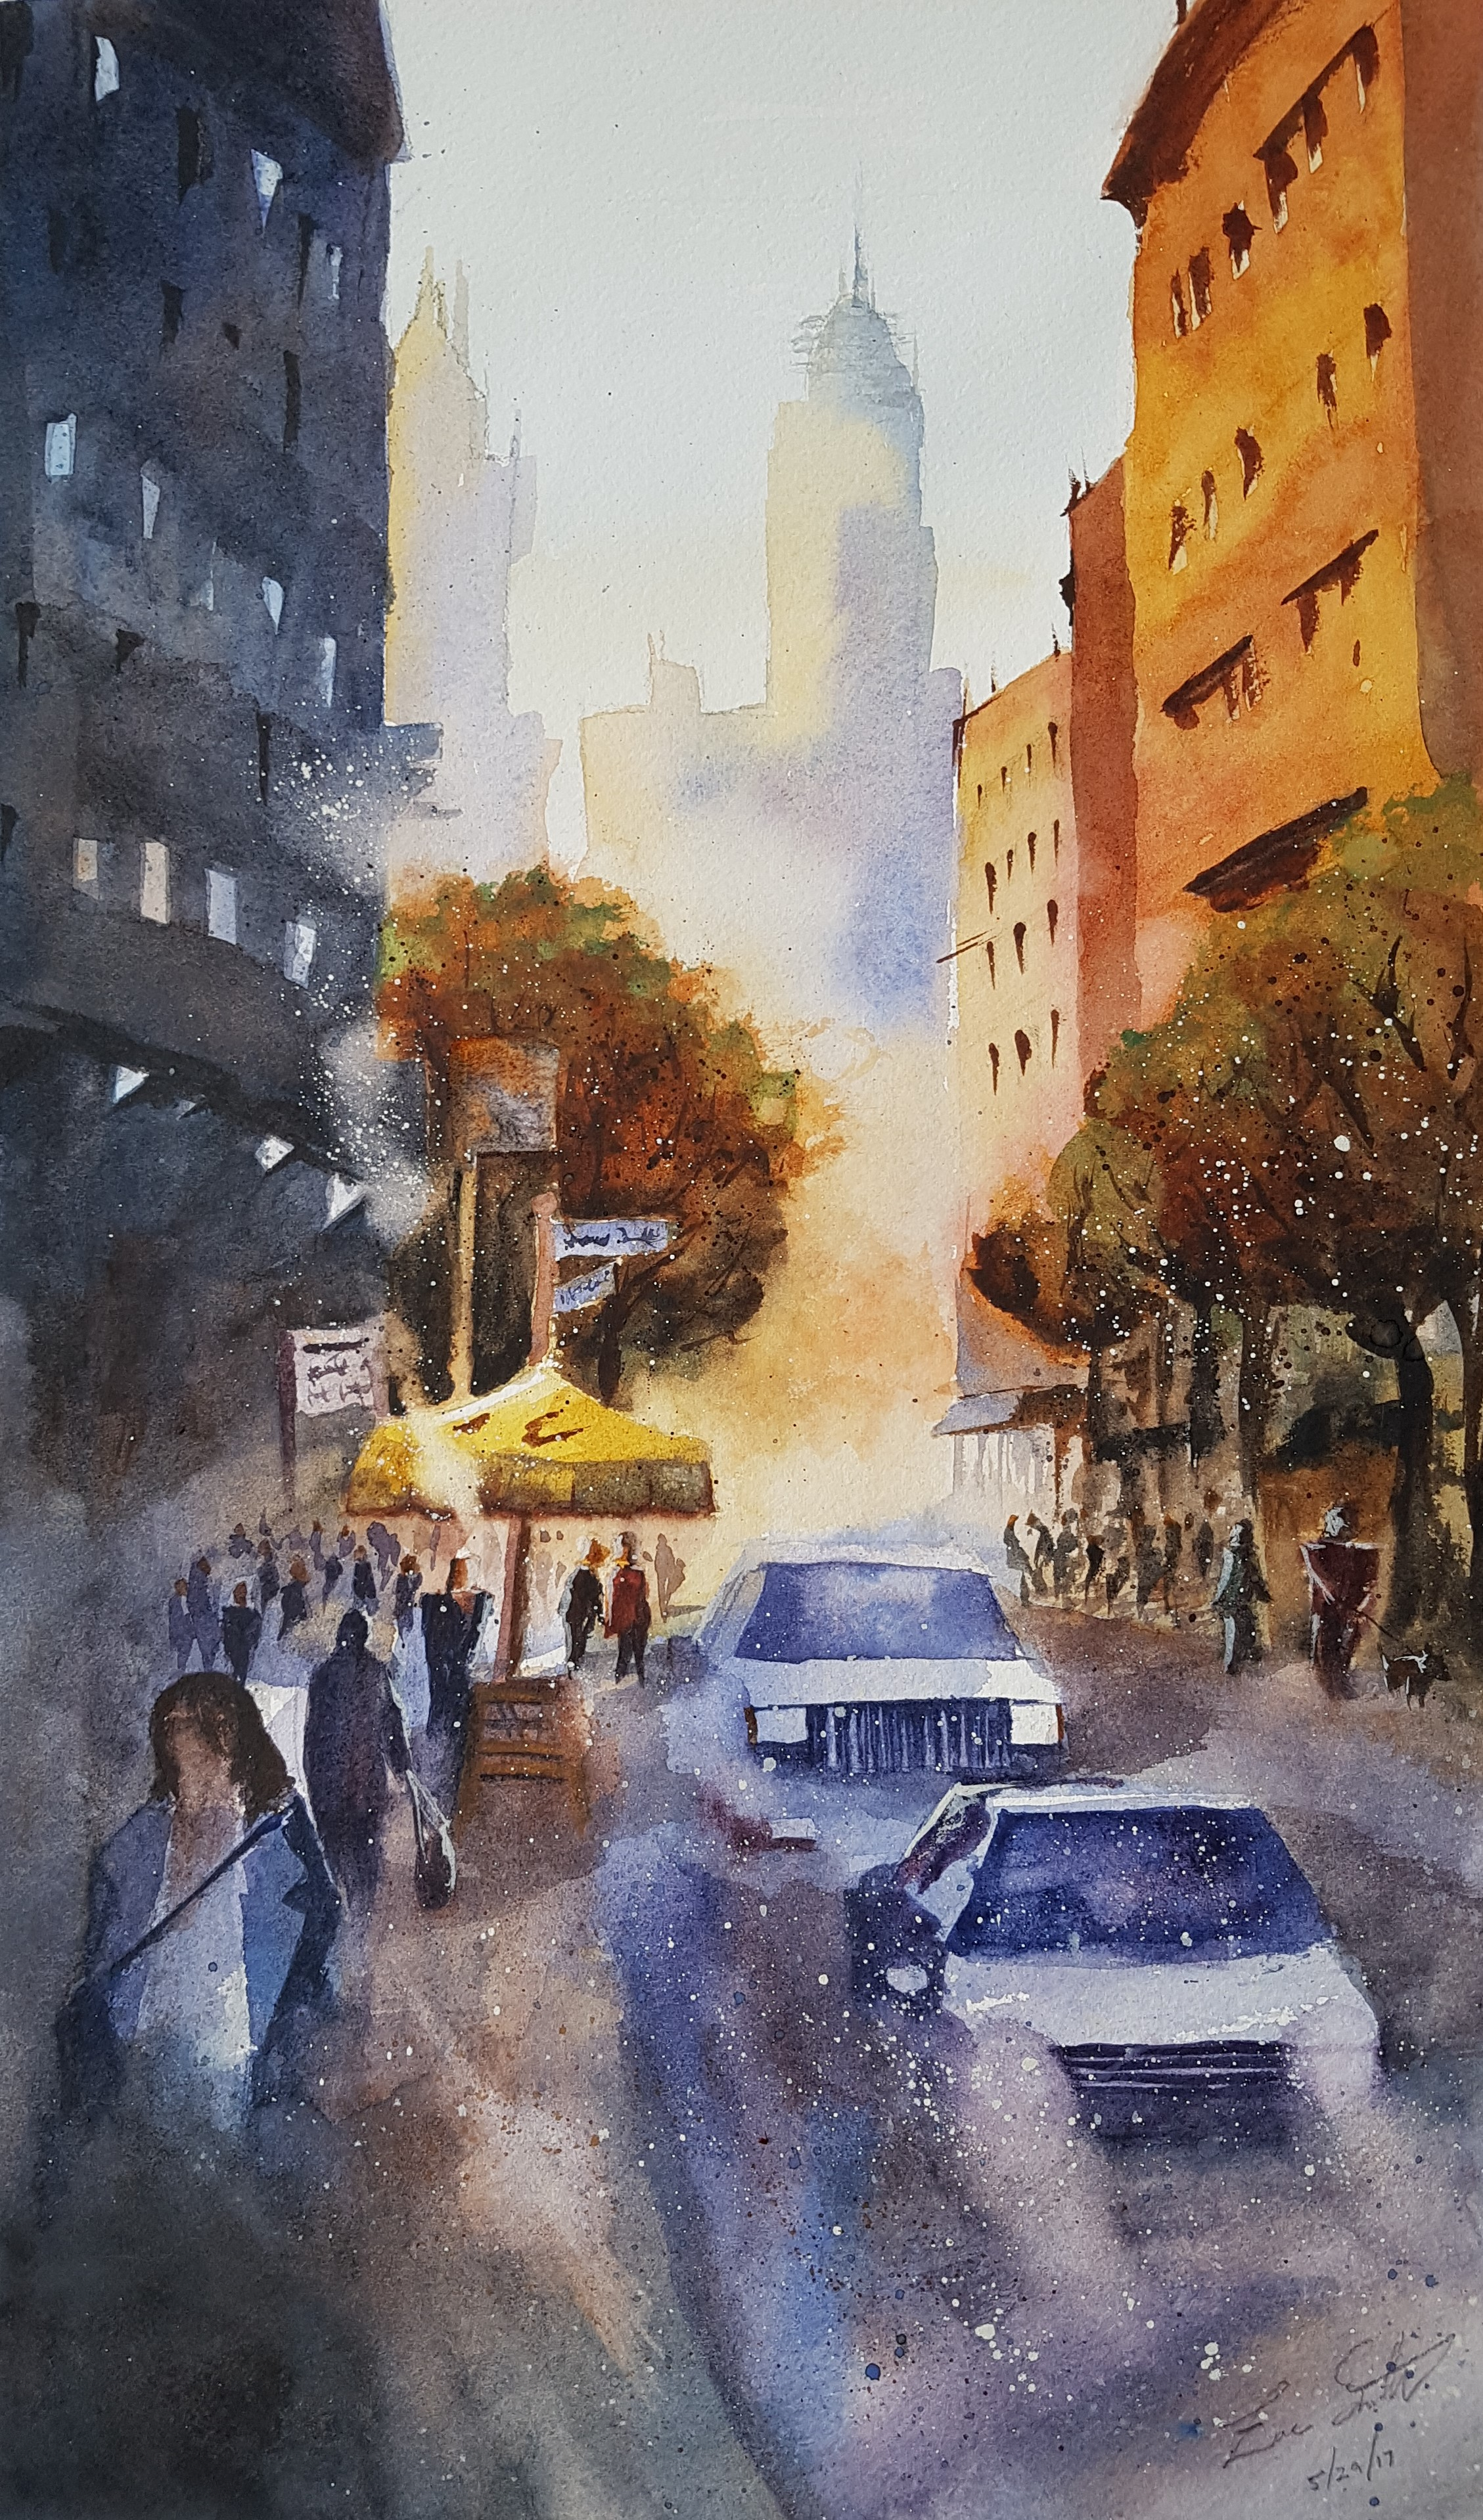 """""""NYC Morning"""" 20x16  I painted this along with a watercolor demo by an artist named Iain Stewart. I noticed that he mainly painted with just three colors - blue, orange, and yellow - and I tried to keep to the spirit of the limited palate throughout the painting.  You can see more of Iain's art on his  Youtube channel , as well as his  website ."""